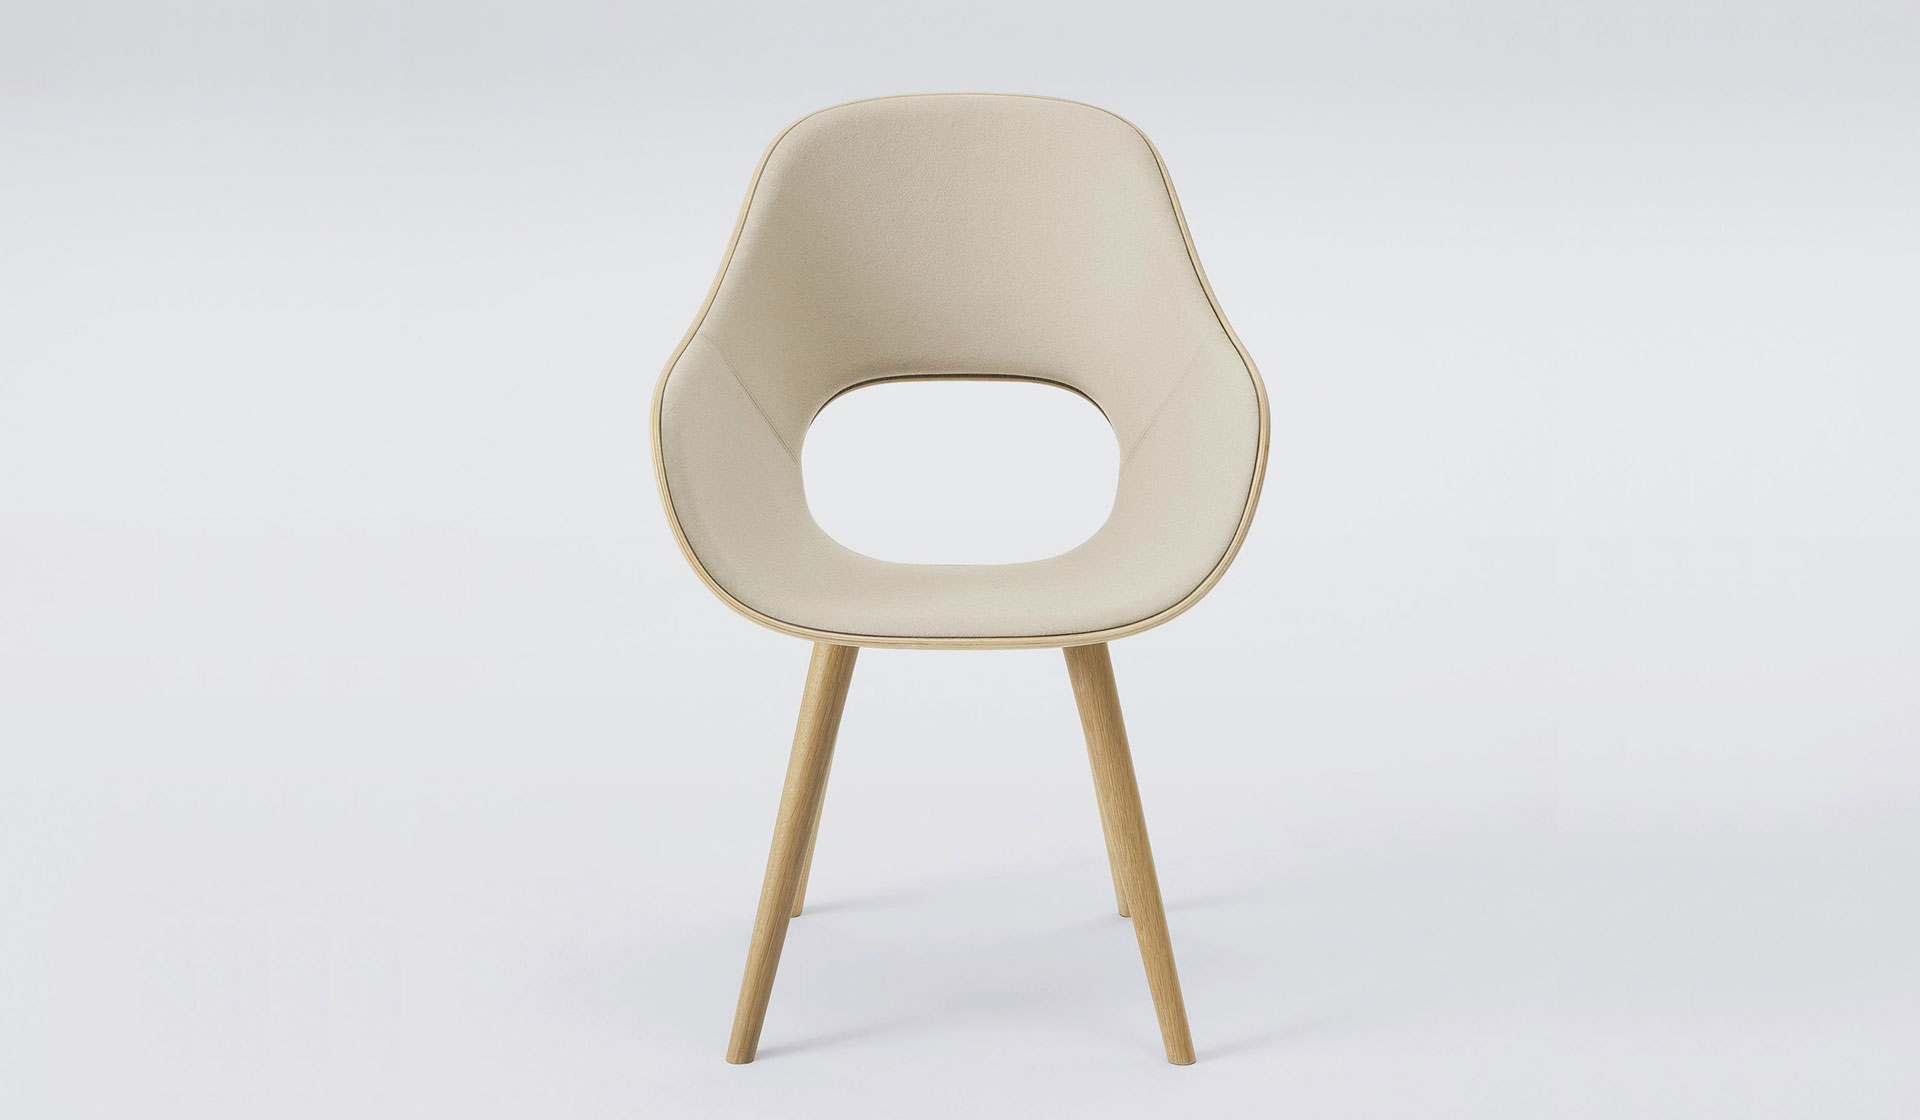 Maruni Roundish armchair (cushioned) designed by Jasper Morrison